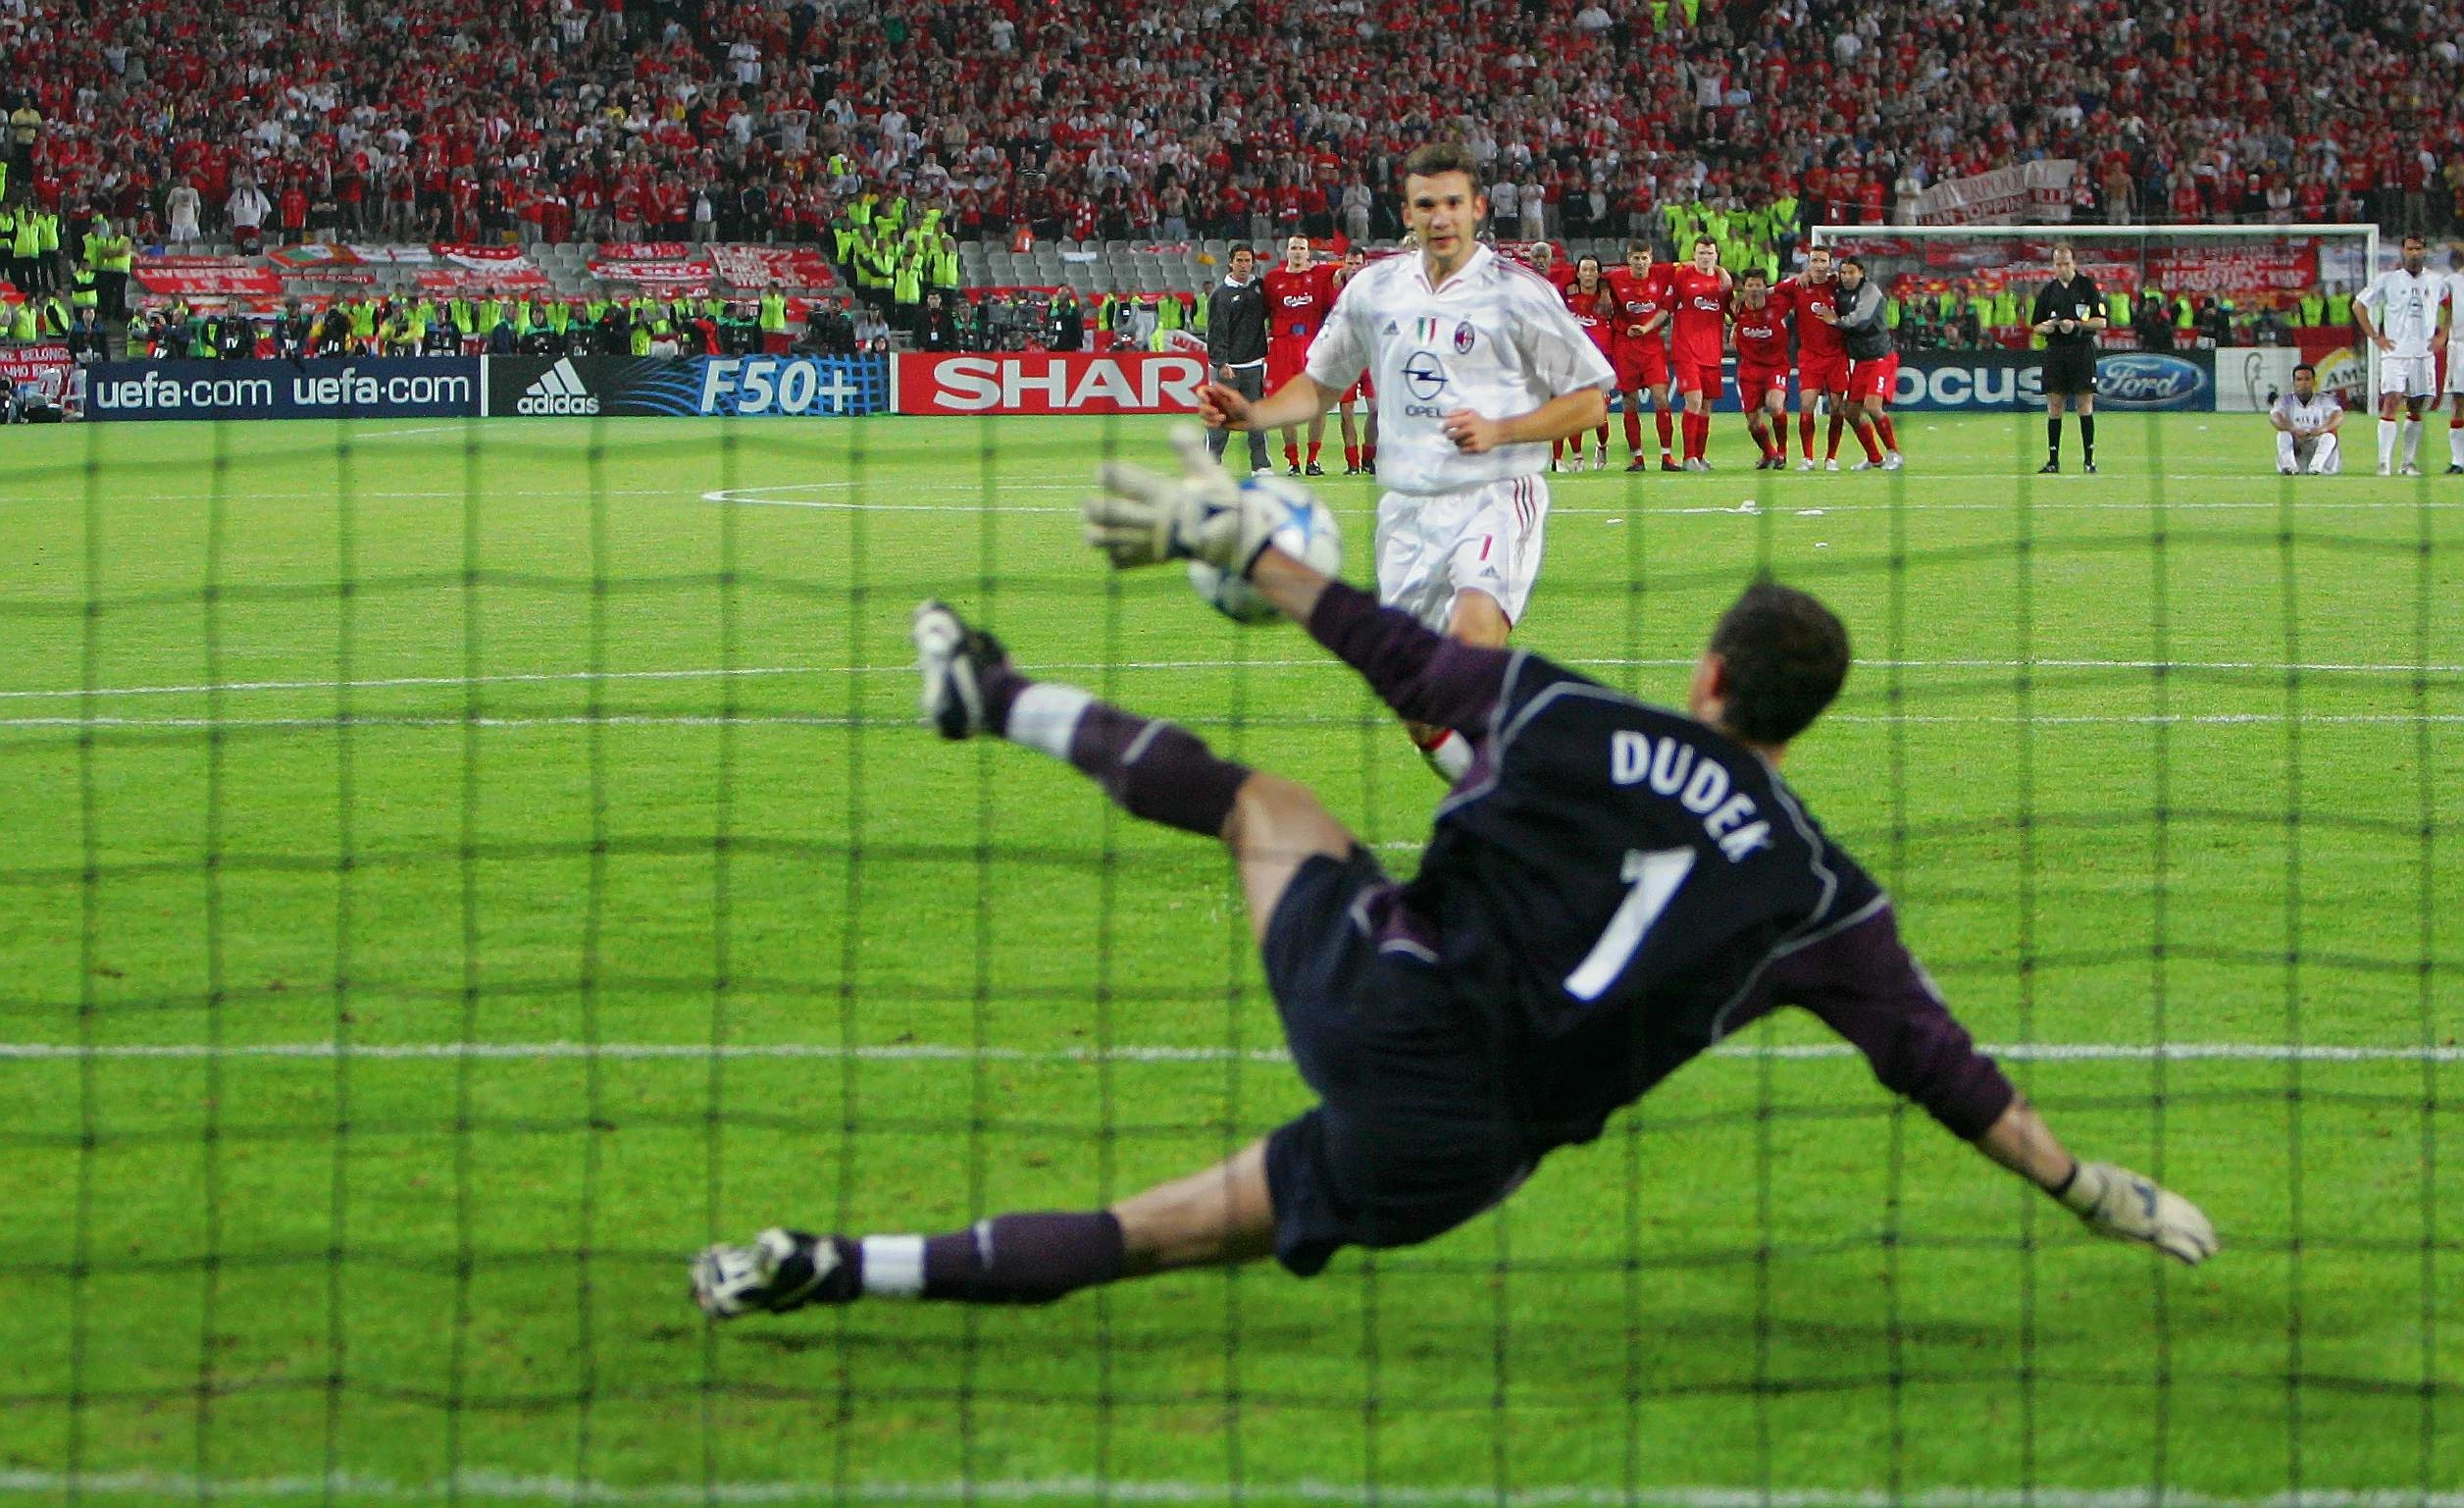 524350234-soccer-2005-uefa-champions-league-final-ac-milan-vs-fc-liverpool.jpg